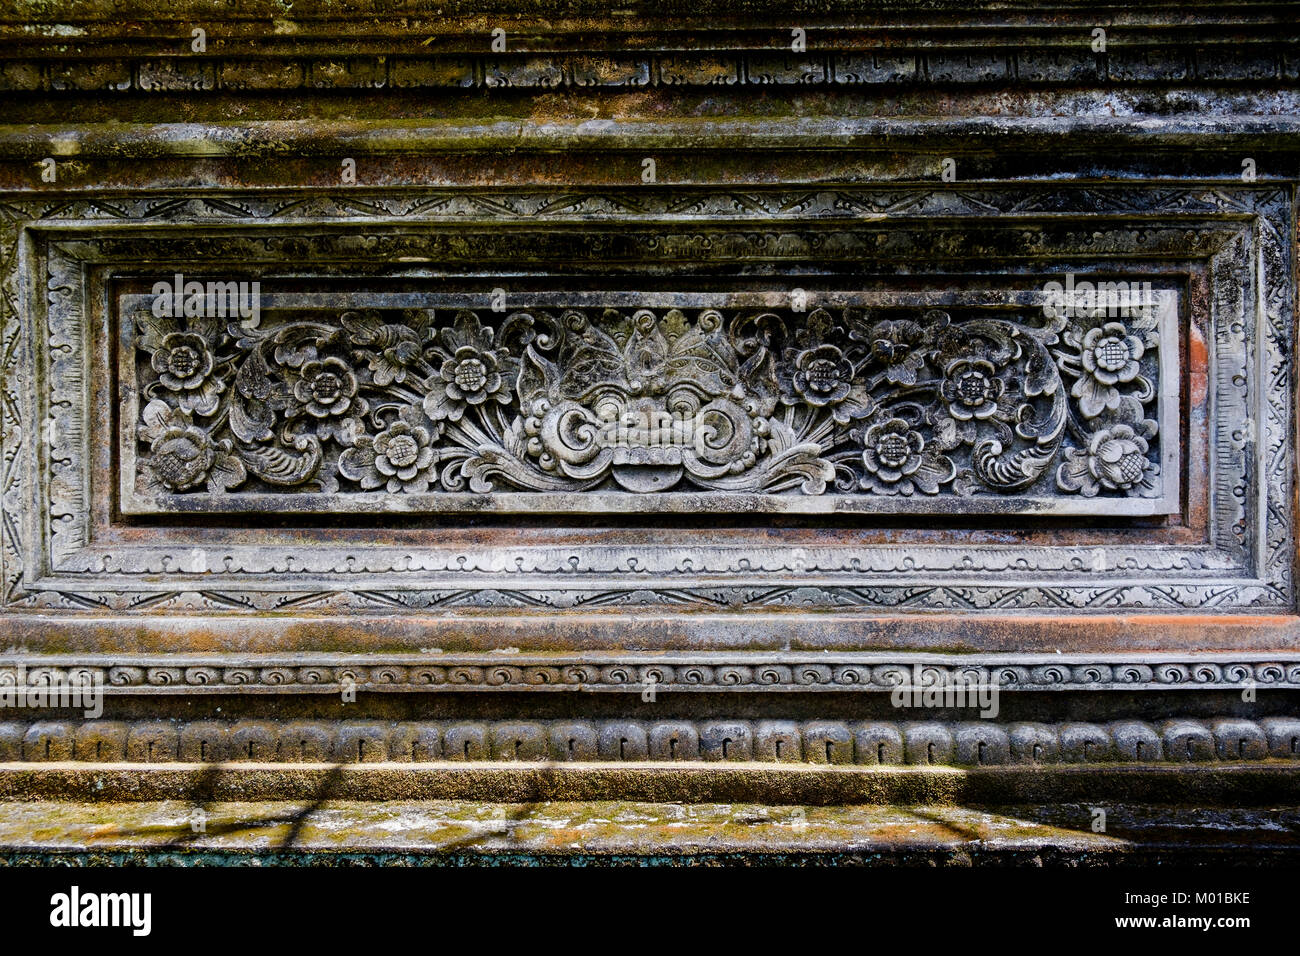 Stone-carved ornaments on wall of a Balinese-style house in Ubud, Bali, Indonesia - Stock Image